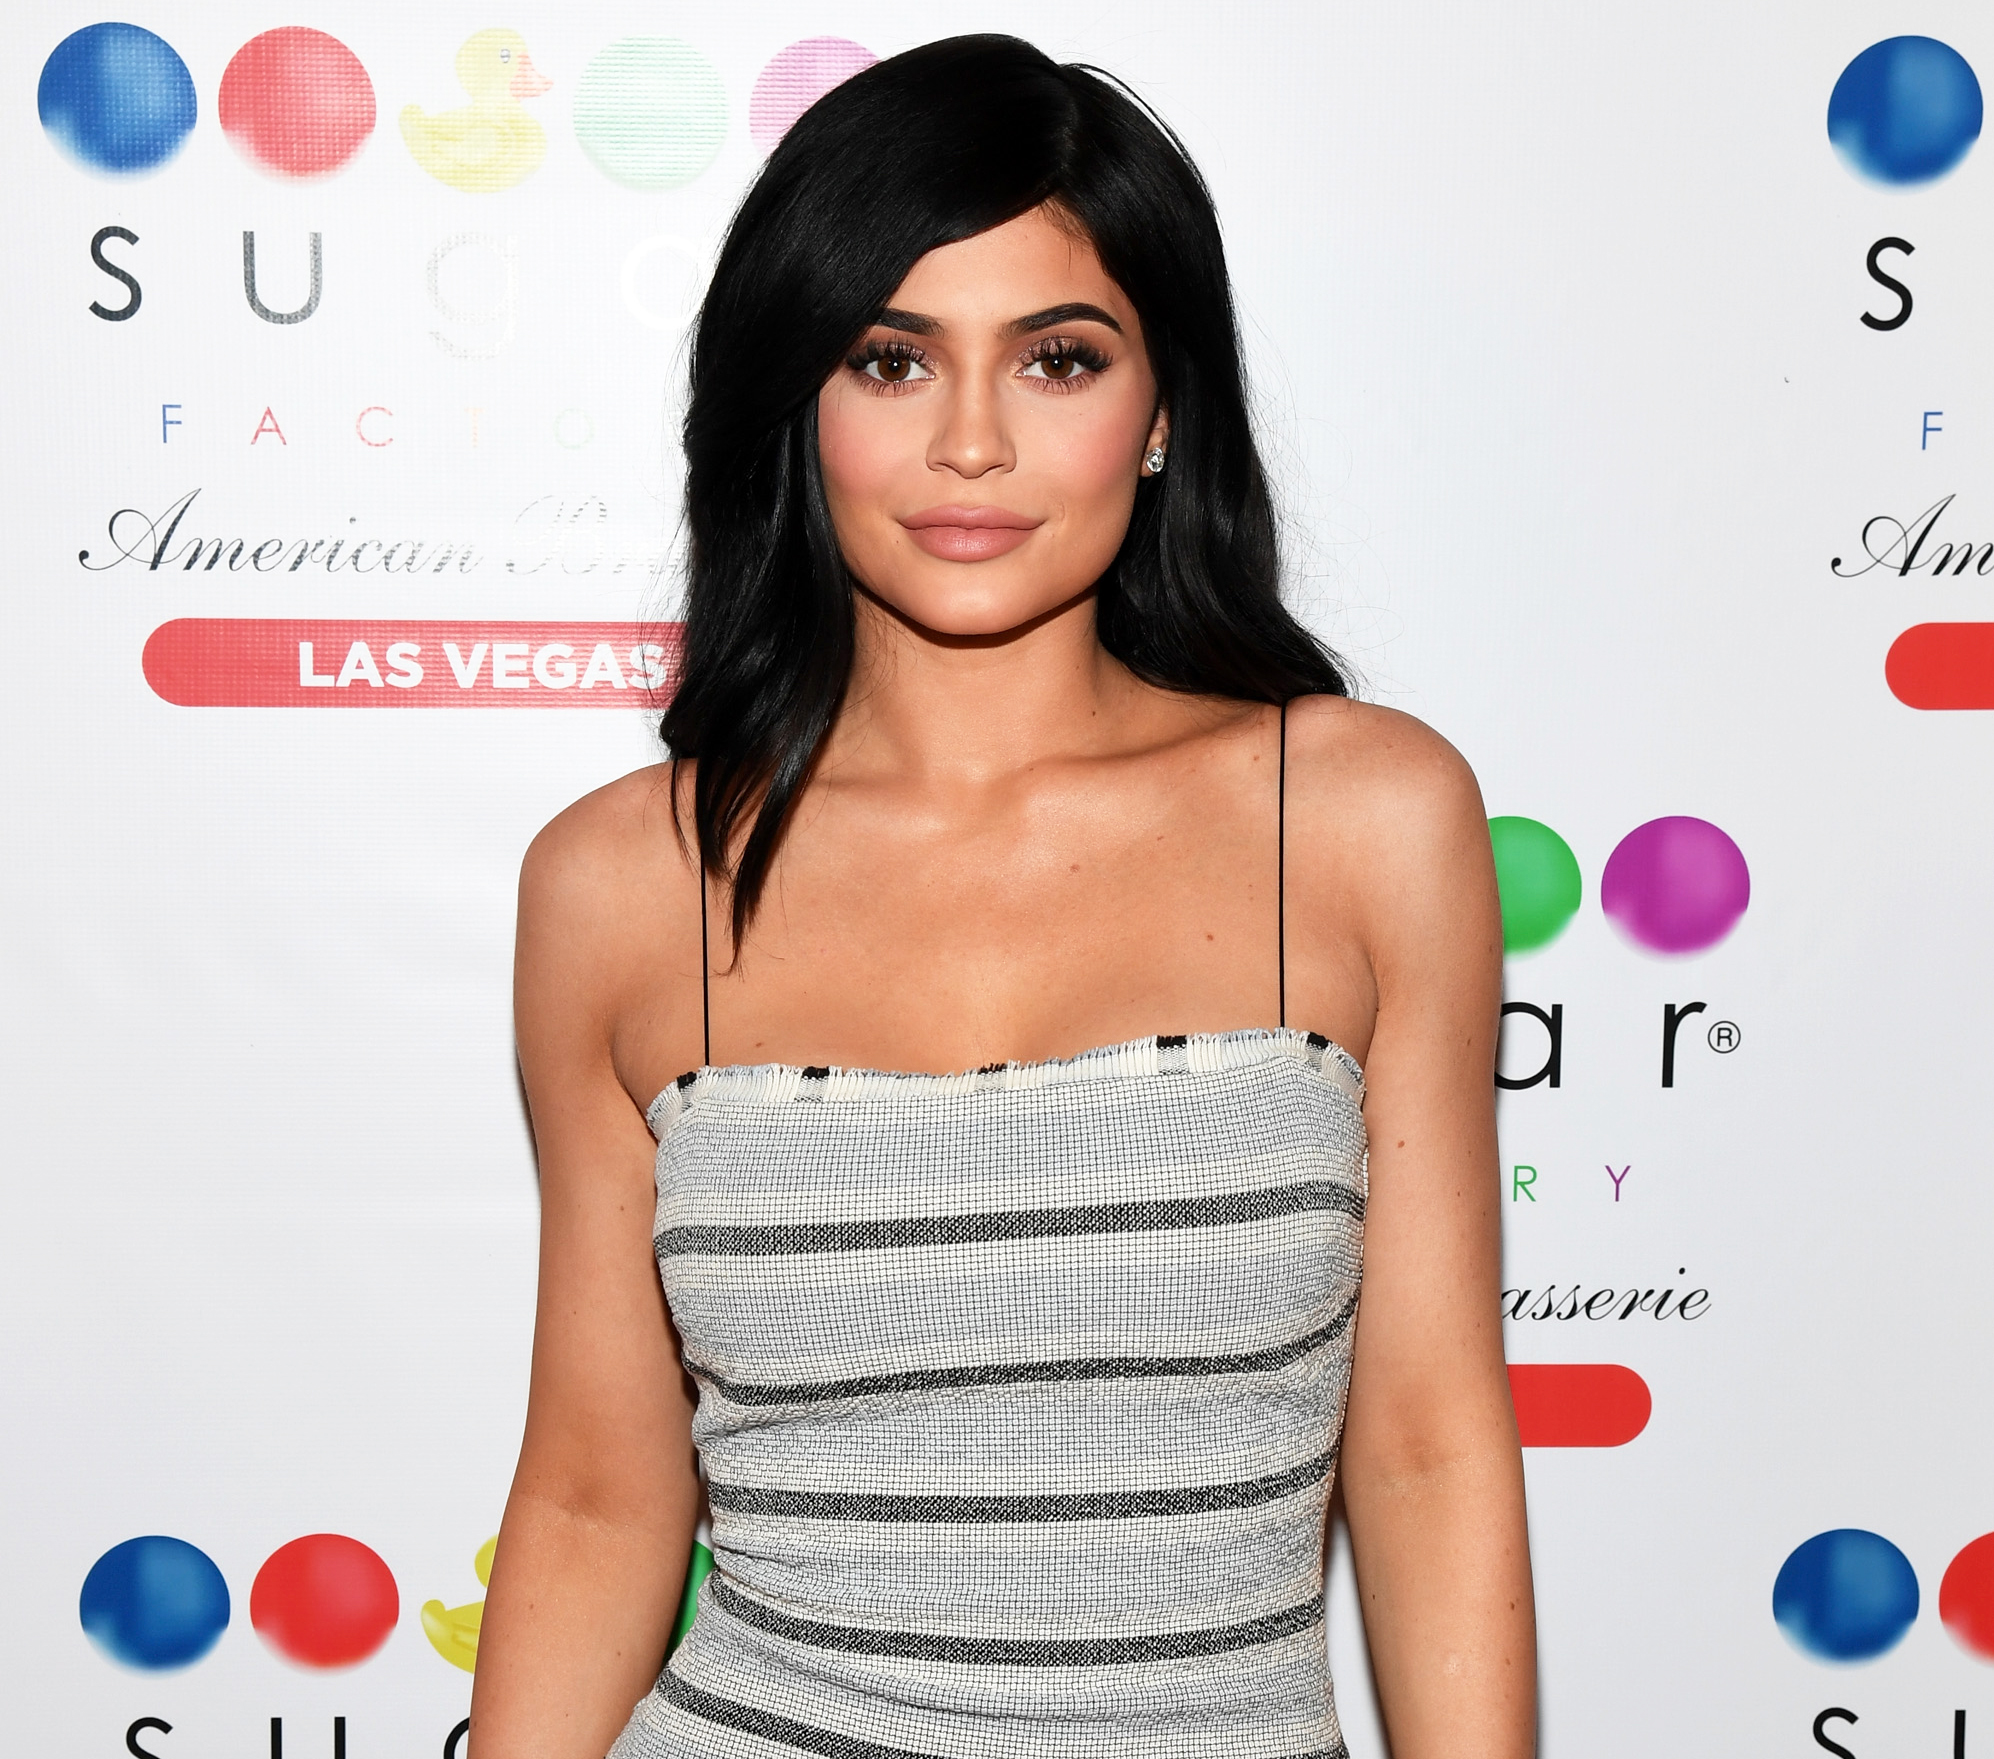 Kylie Jenner's Plastic Surgeon Says She's Responsible for More Young Women Getting Lip Work